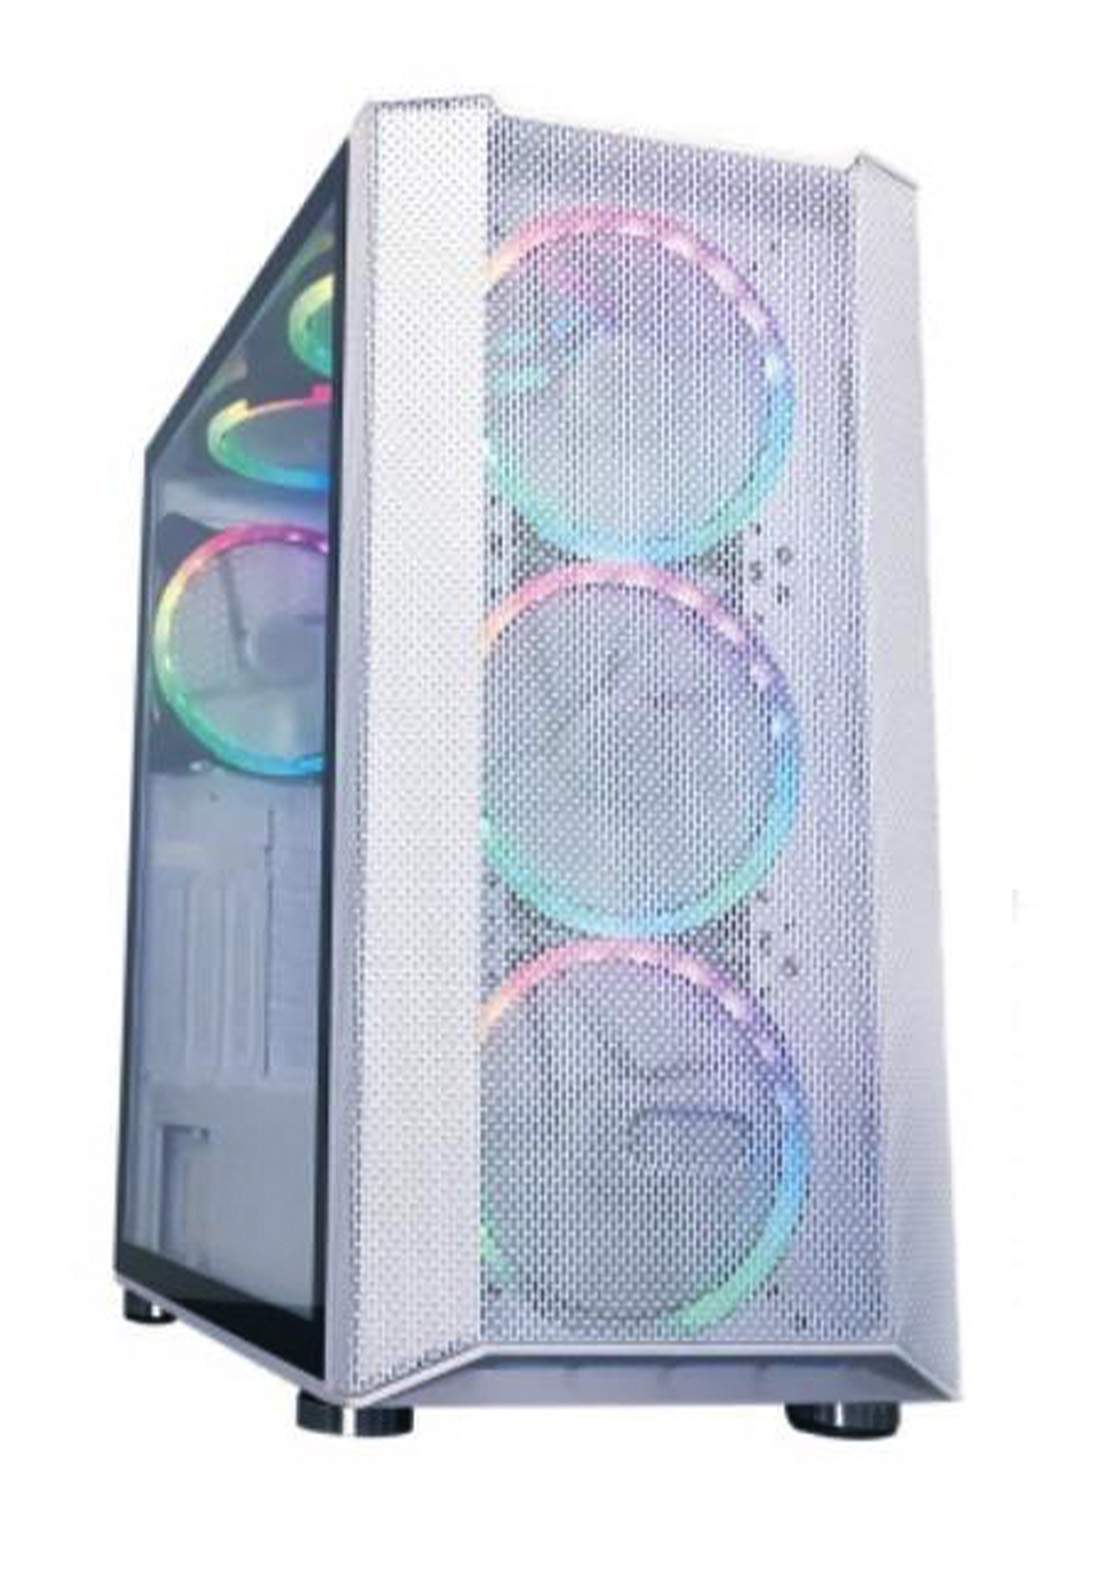 Sate K881 Gaming Case 6 Fans - White  كيس حاسبة